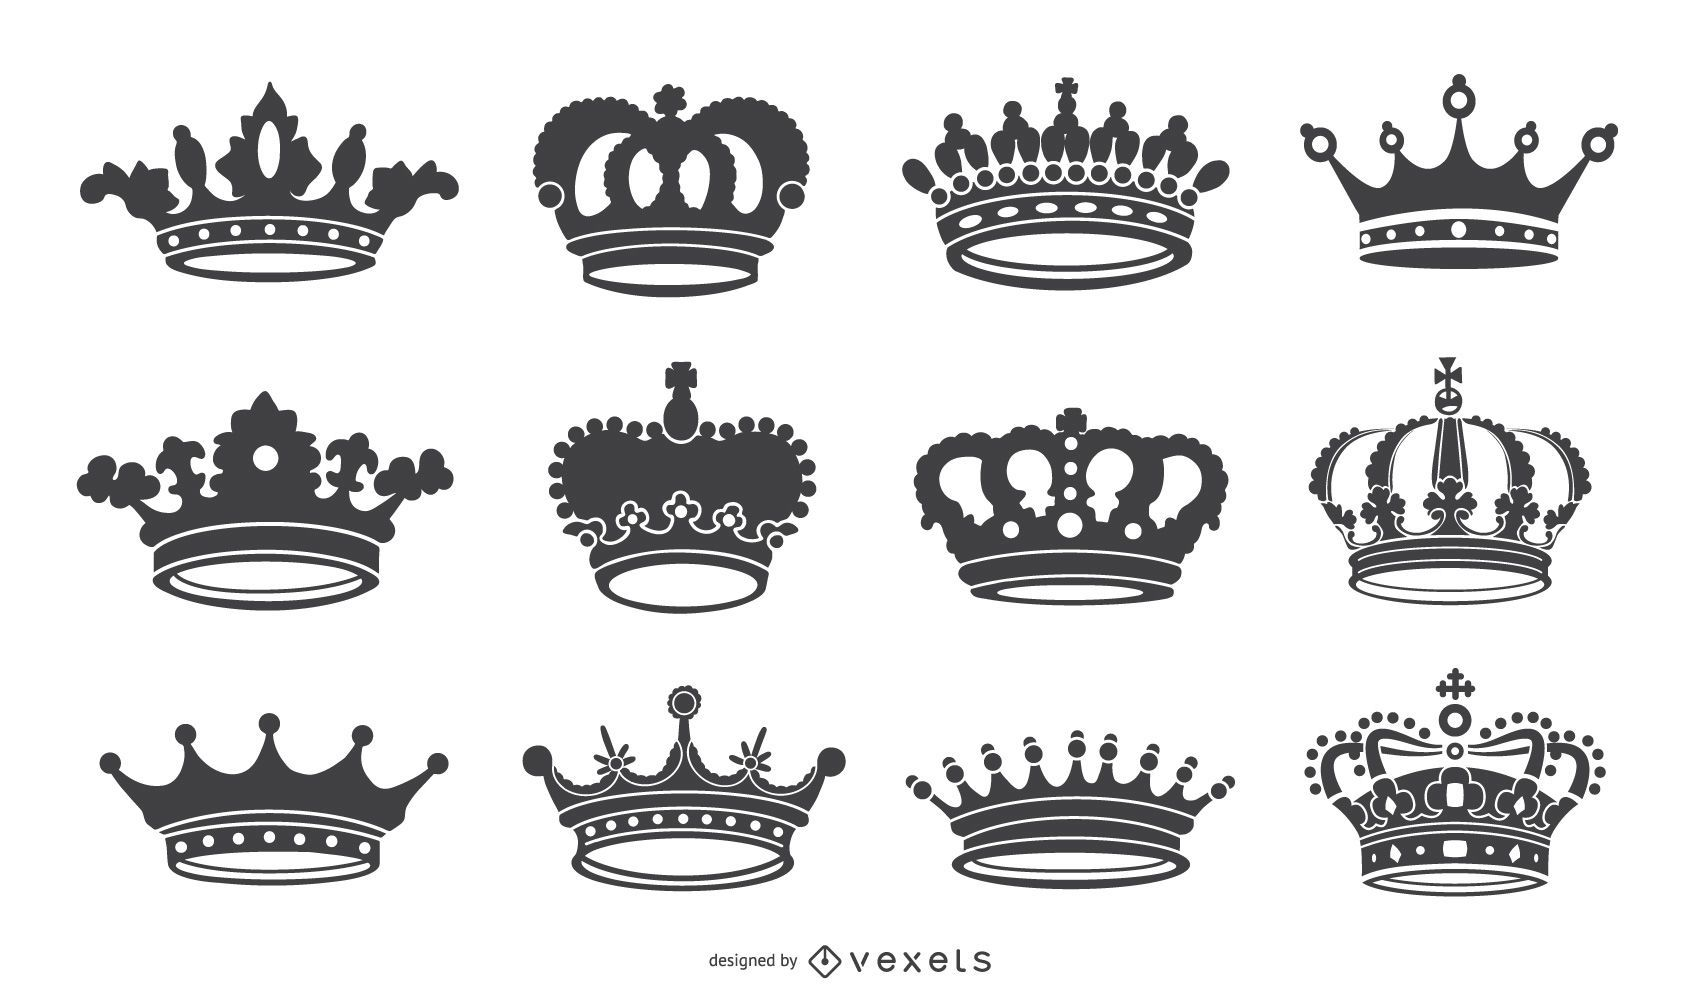 Crown icon silhouettes collection